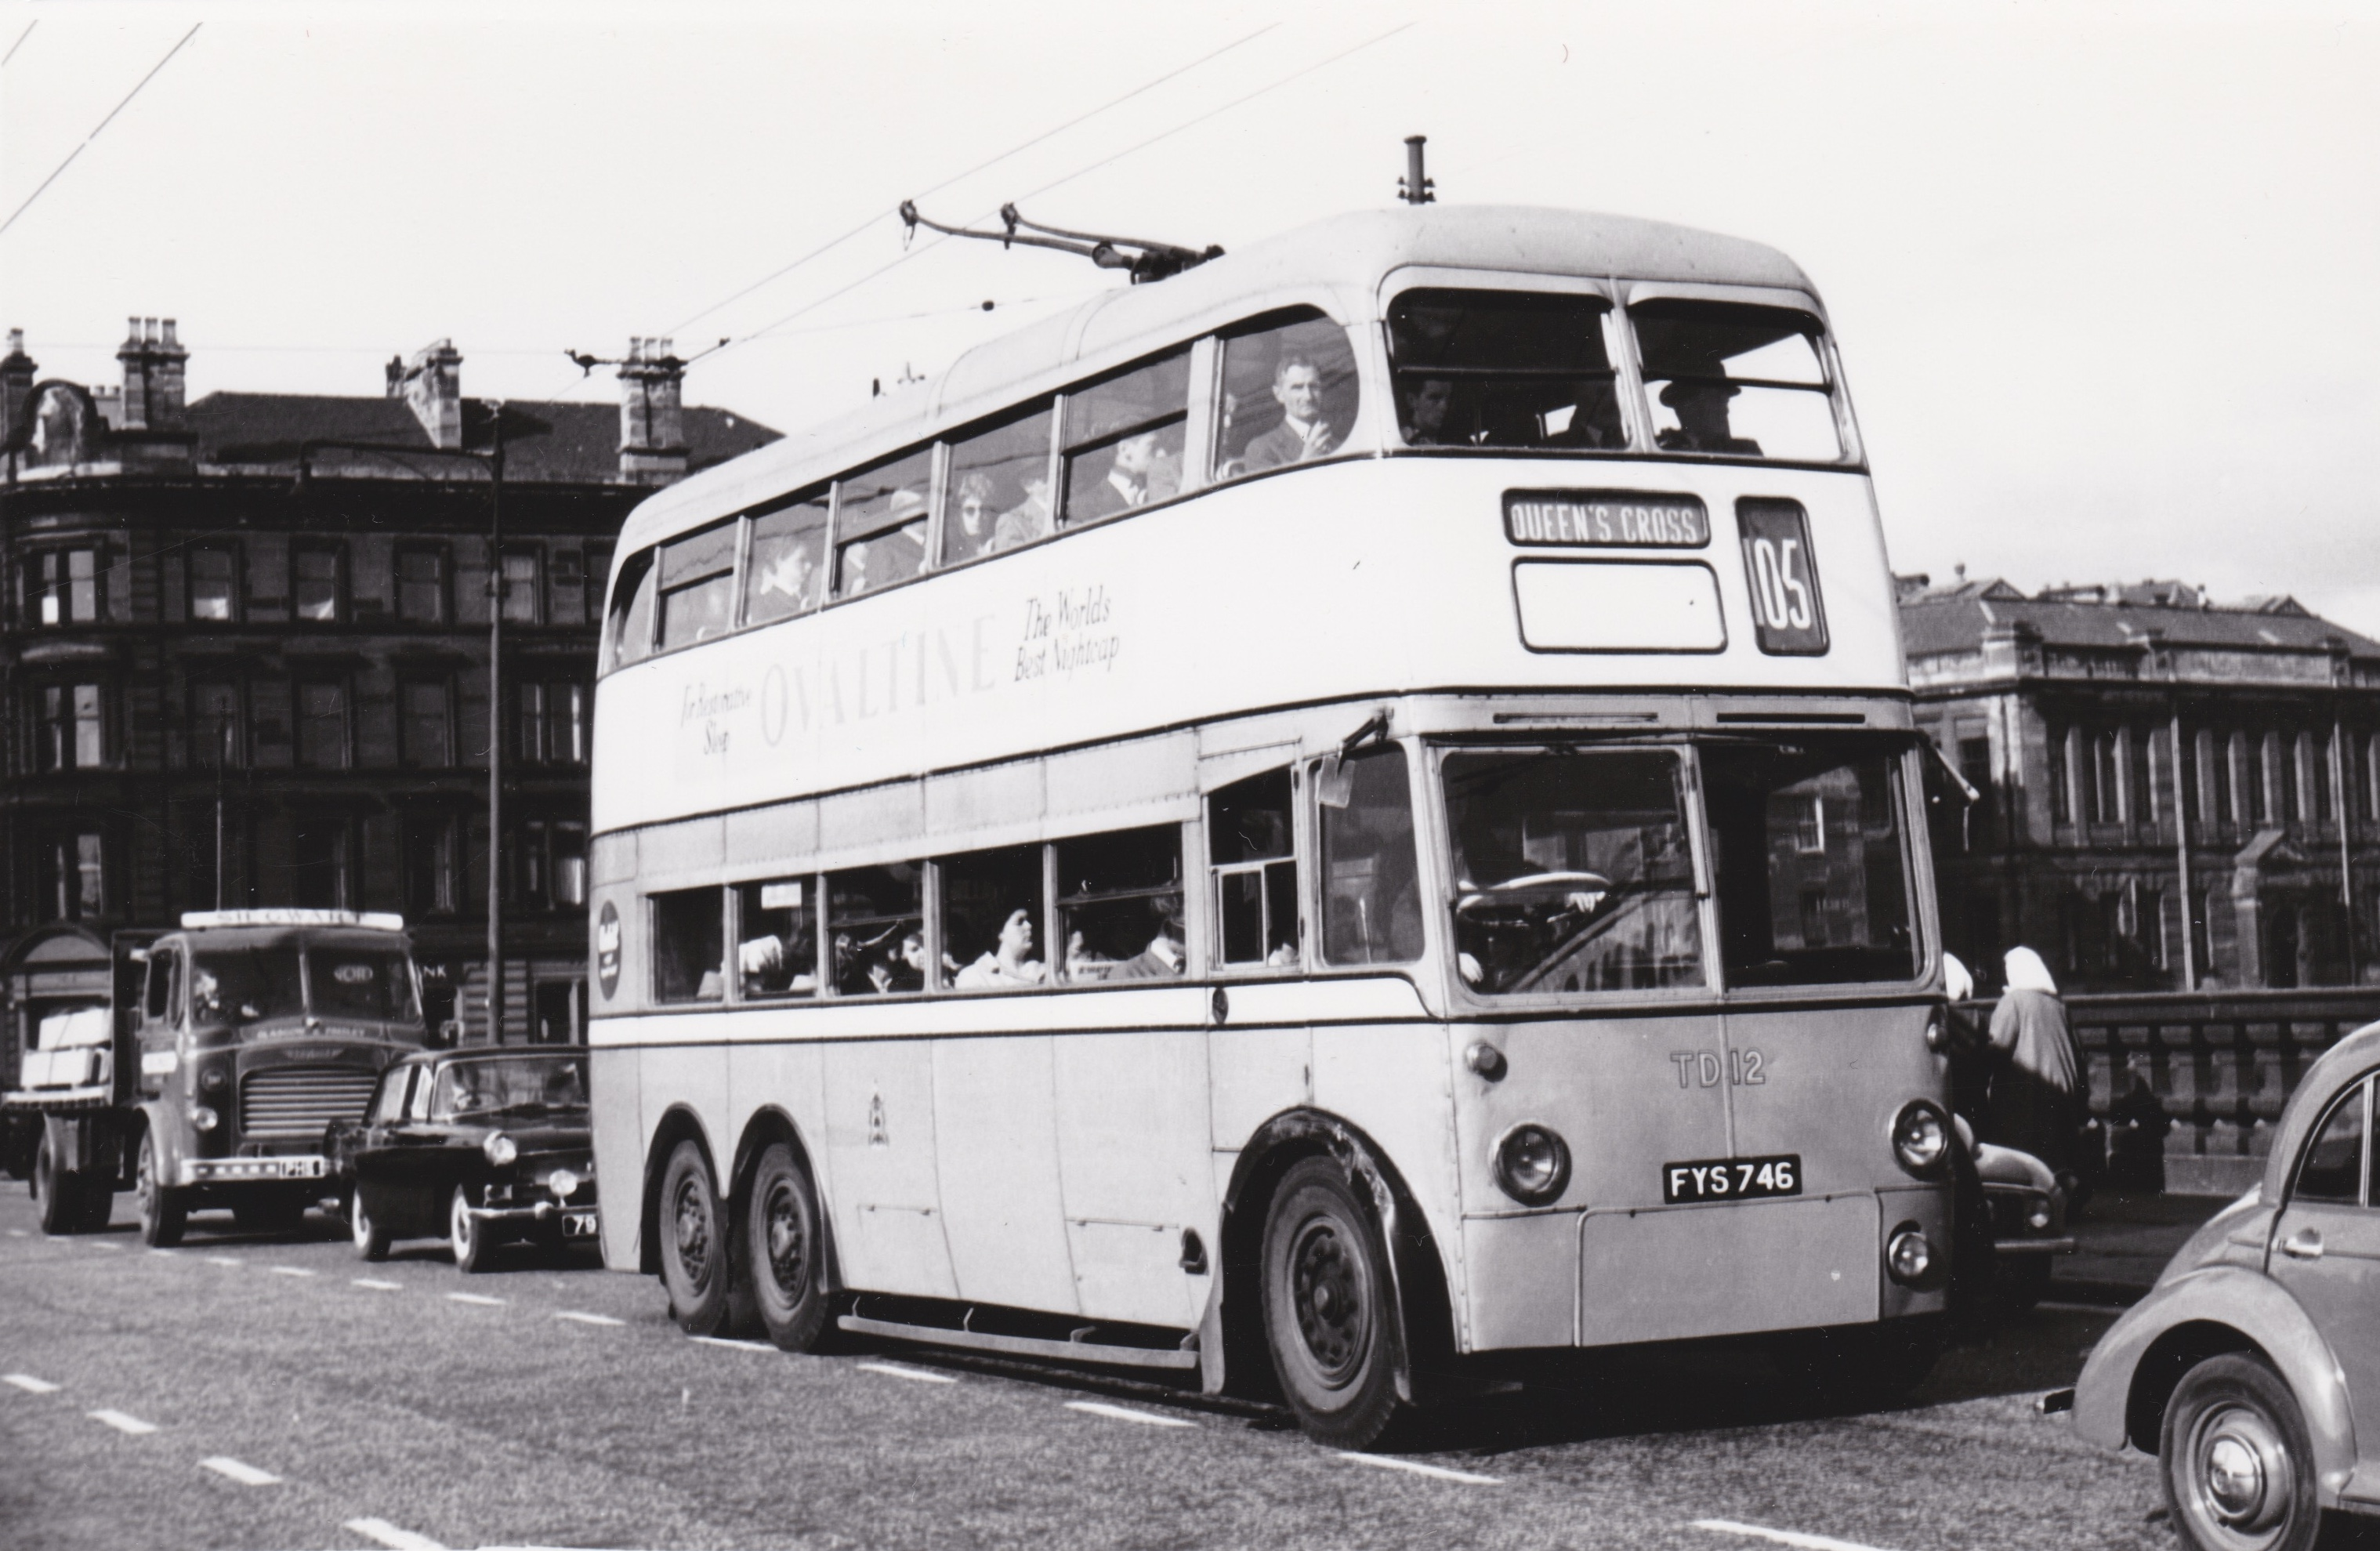 Glasgow's Trolleybuses